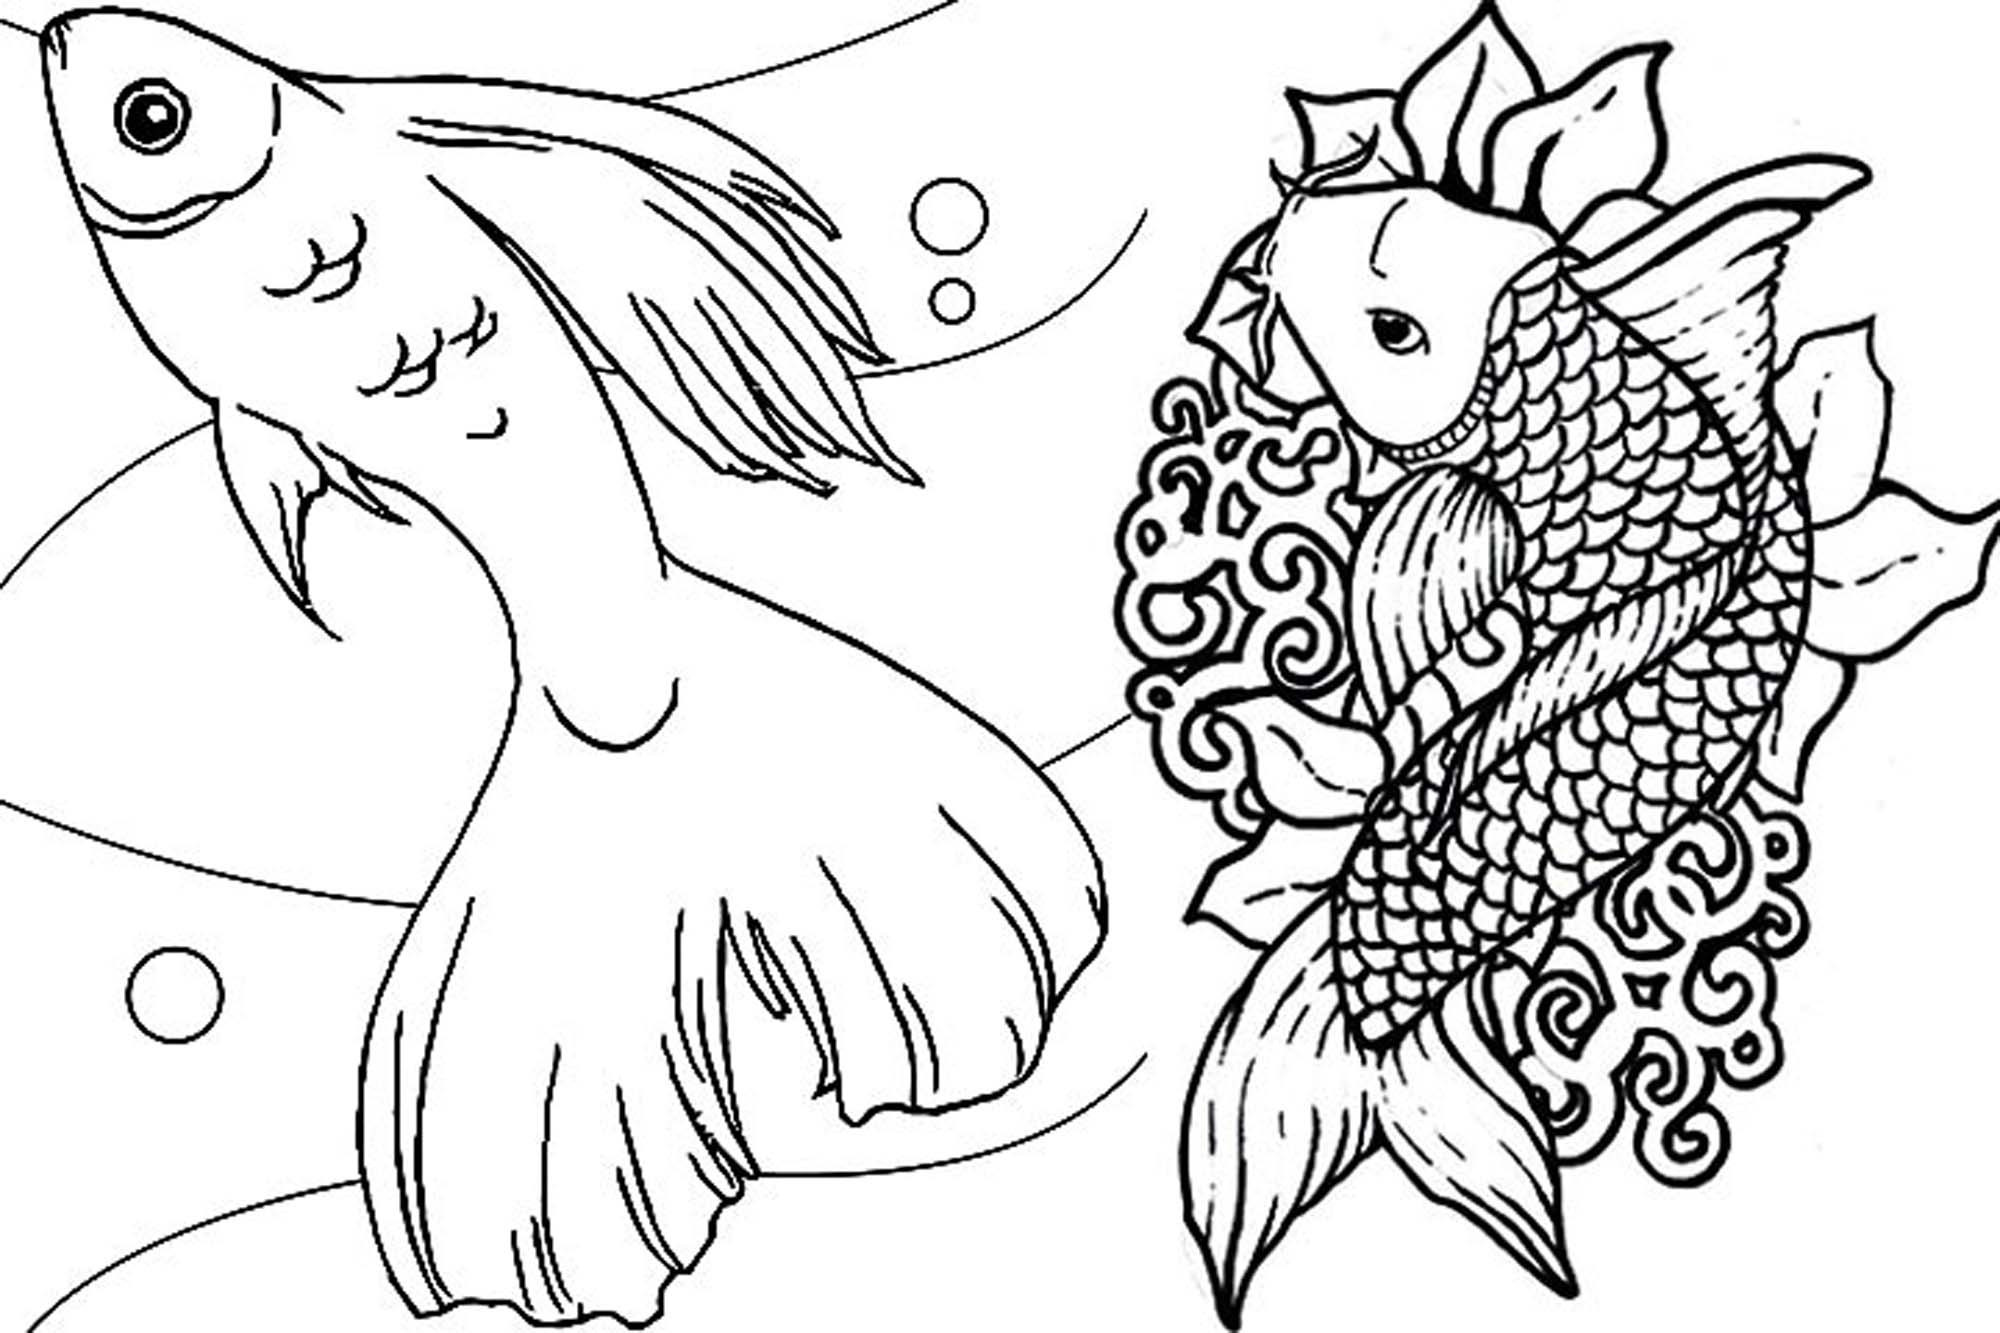 2000x1333 Best Of Koi Adult Coloring Pages To Print Gallery Printable